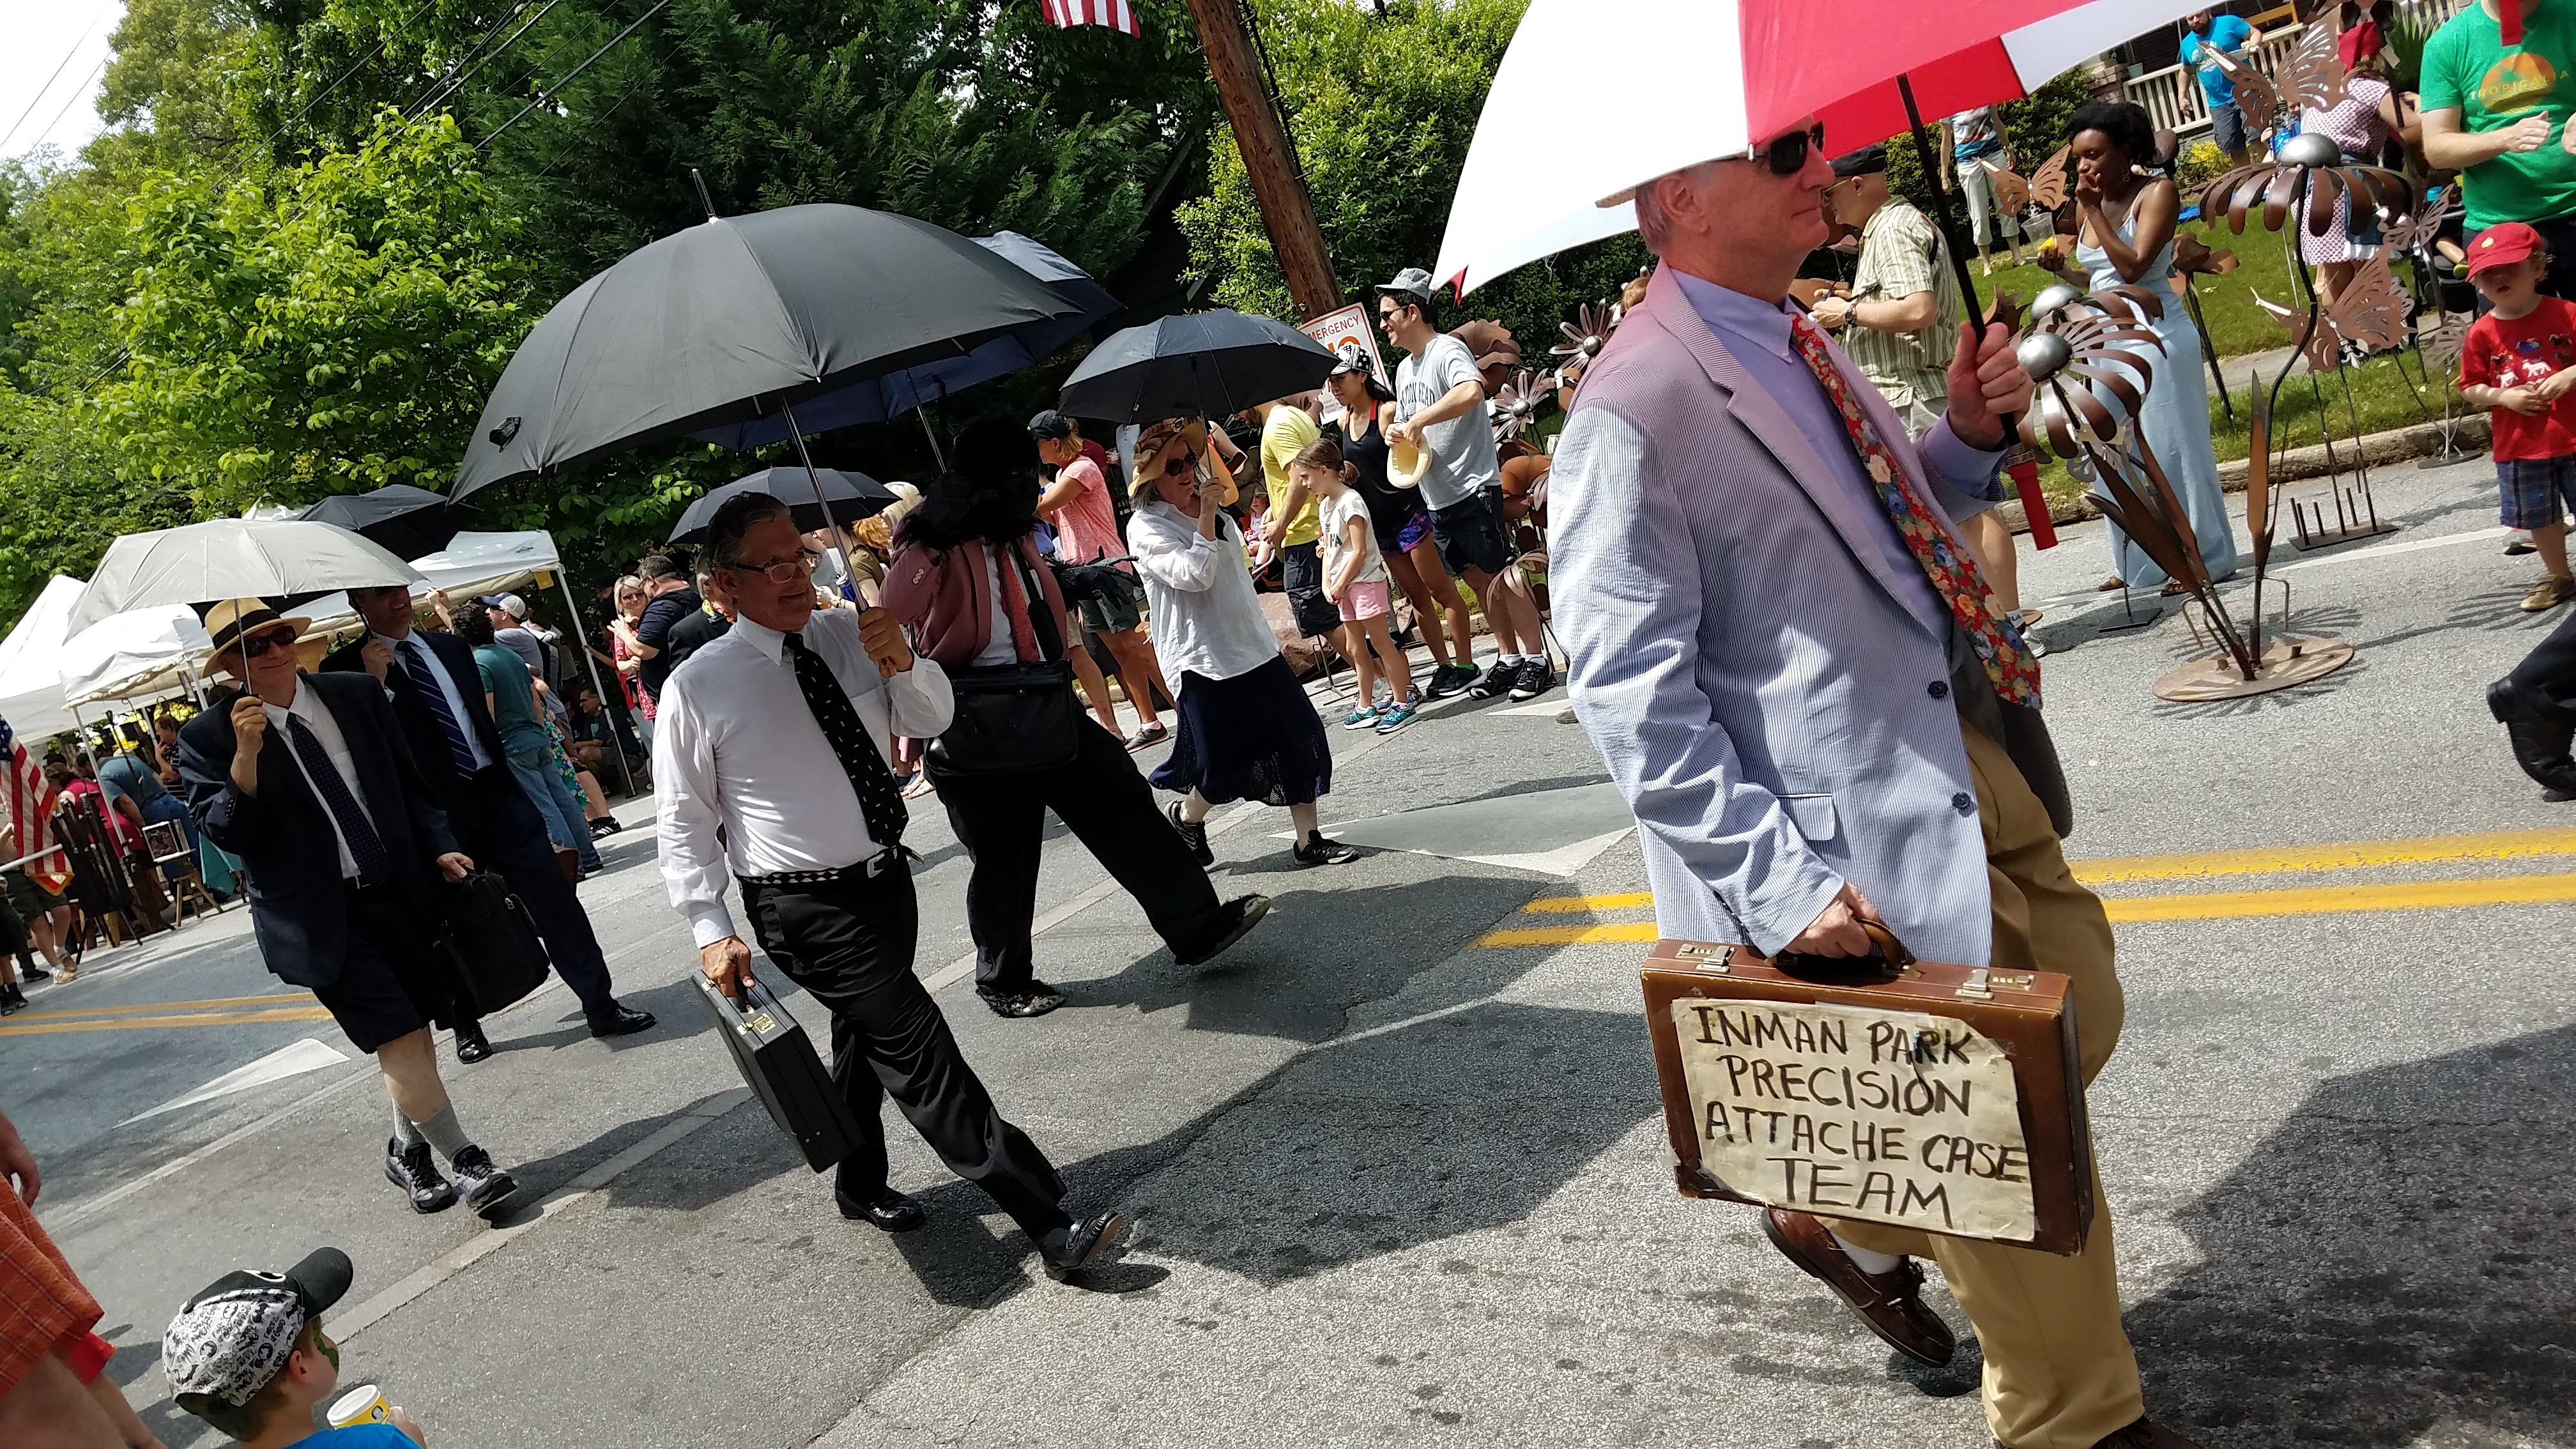 A group of men in a parade use umbrellas over their heads.